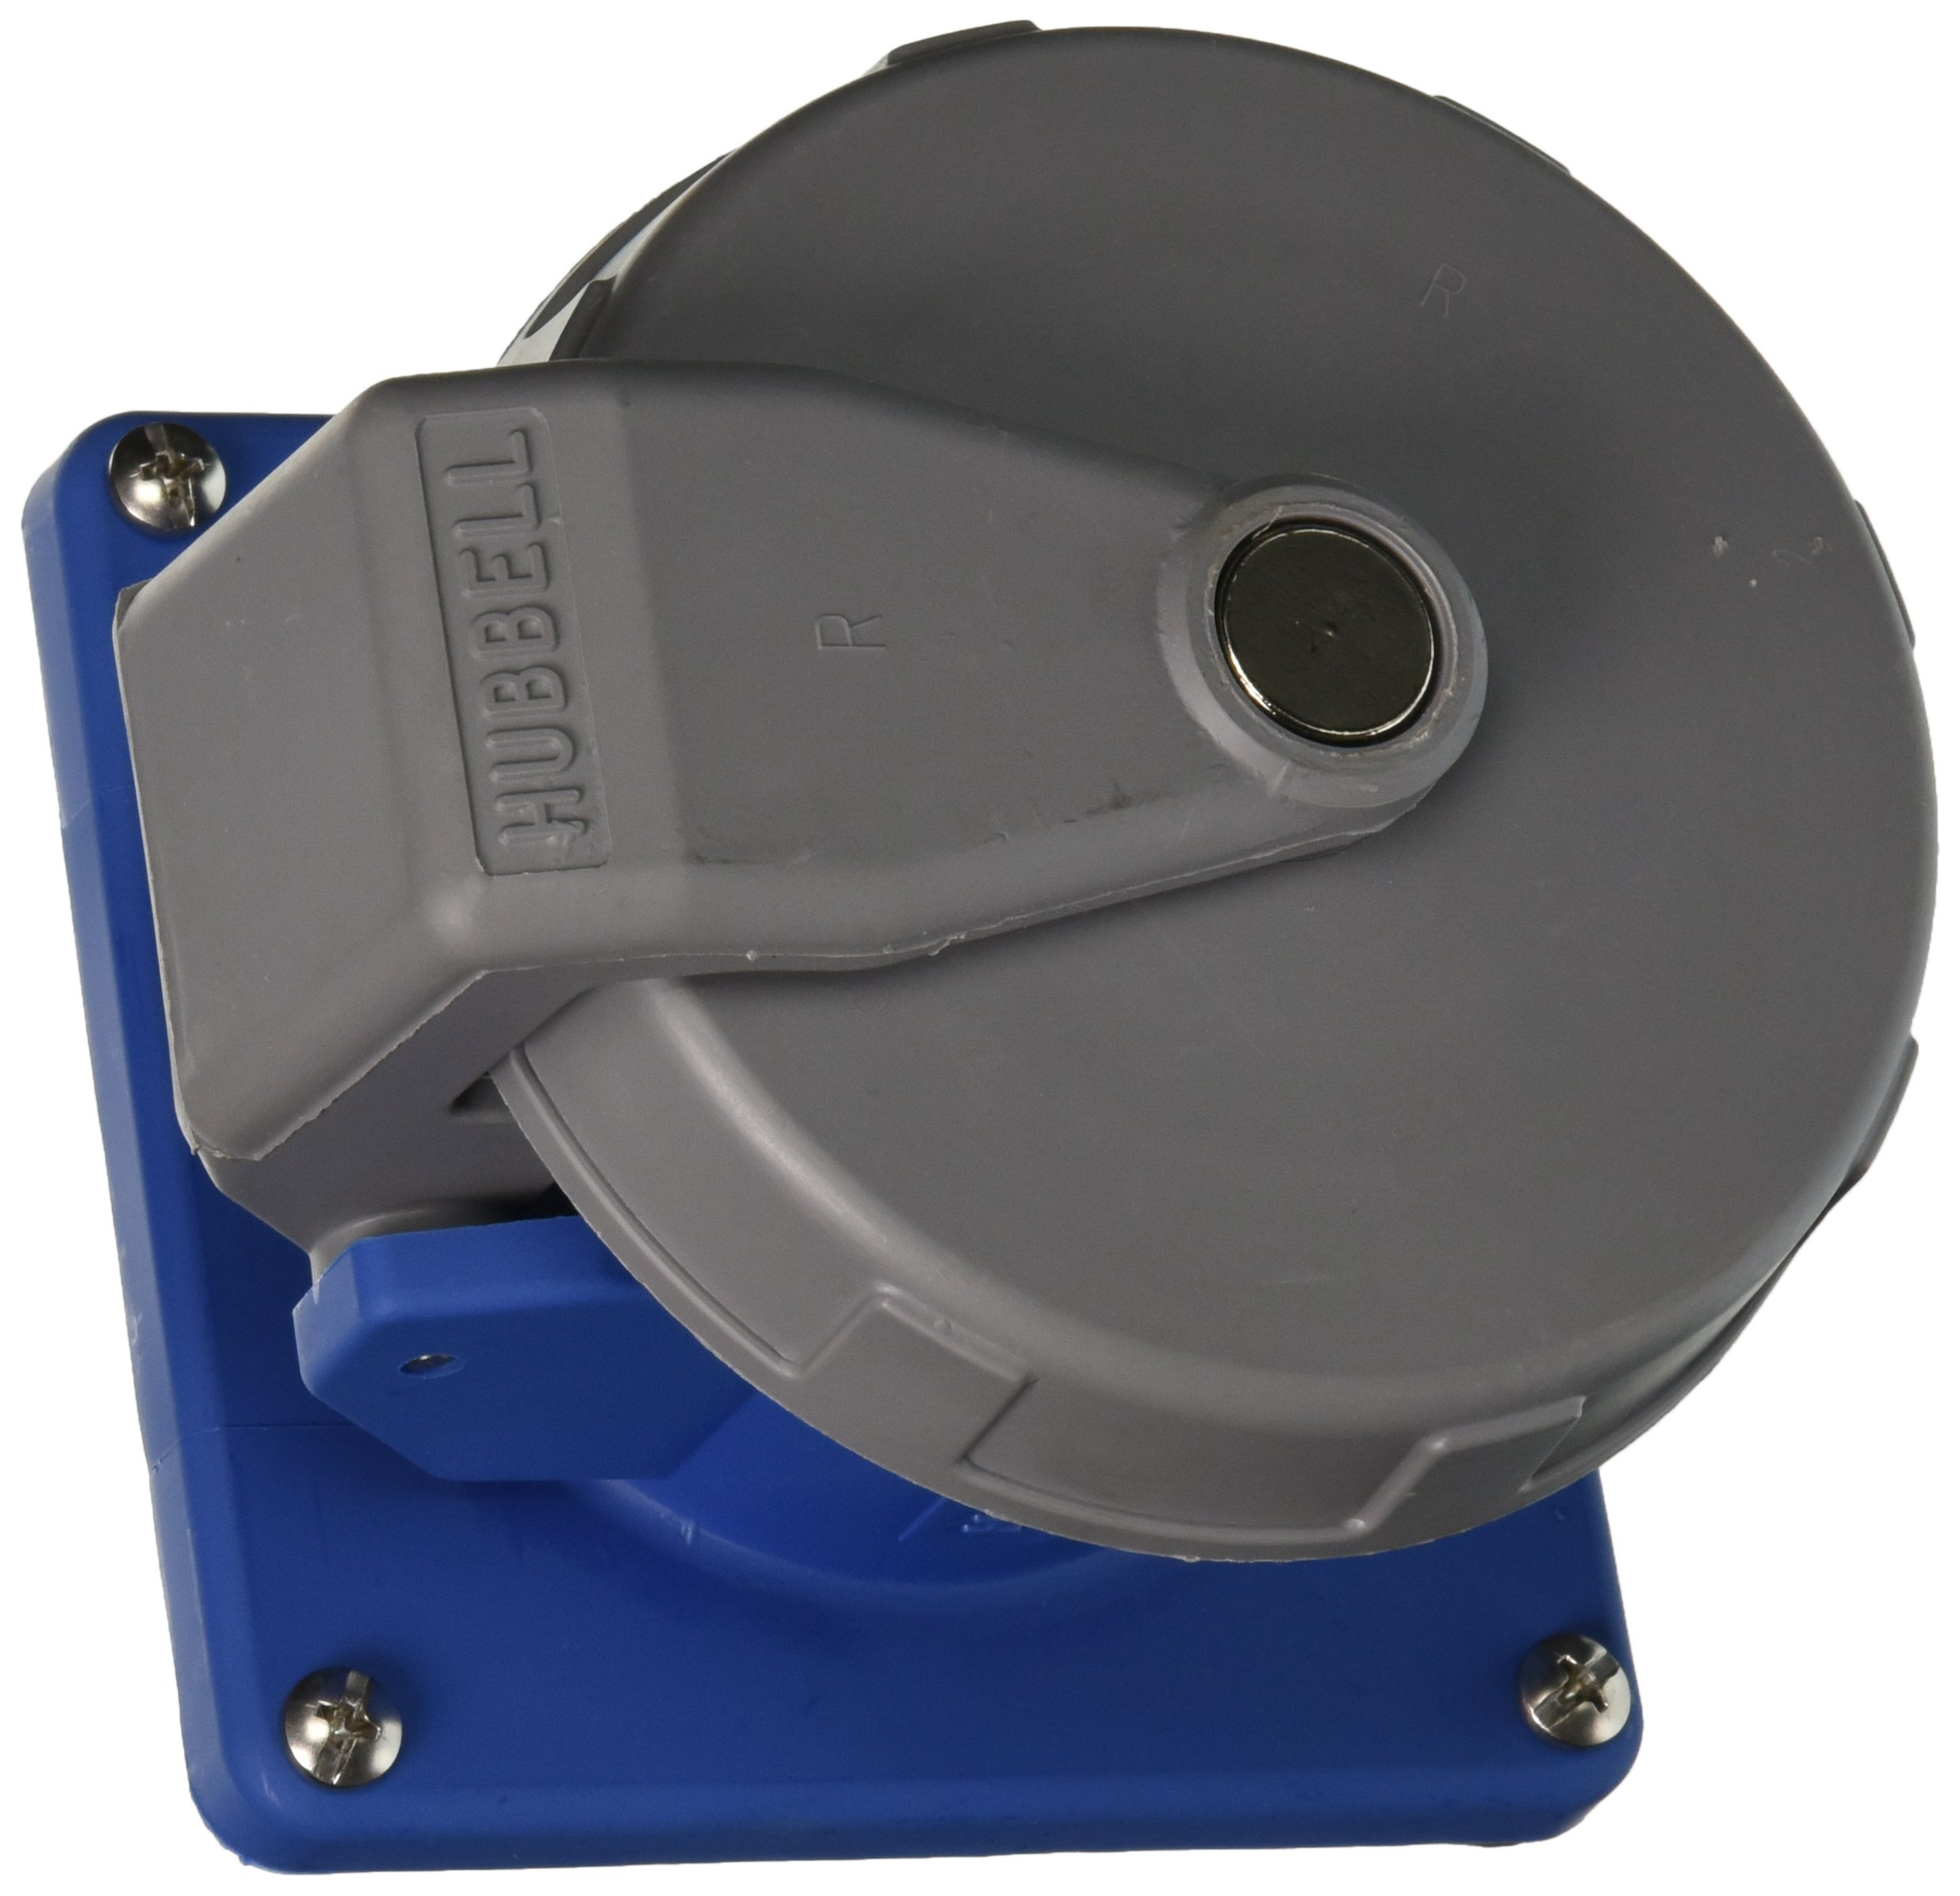 Hubbell HBL360R6W Pin and Sleeve IEC Receptacle, 2 Pole, 3 Wire, 60 amp, 250V, Watertight